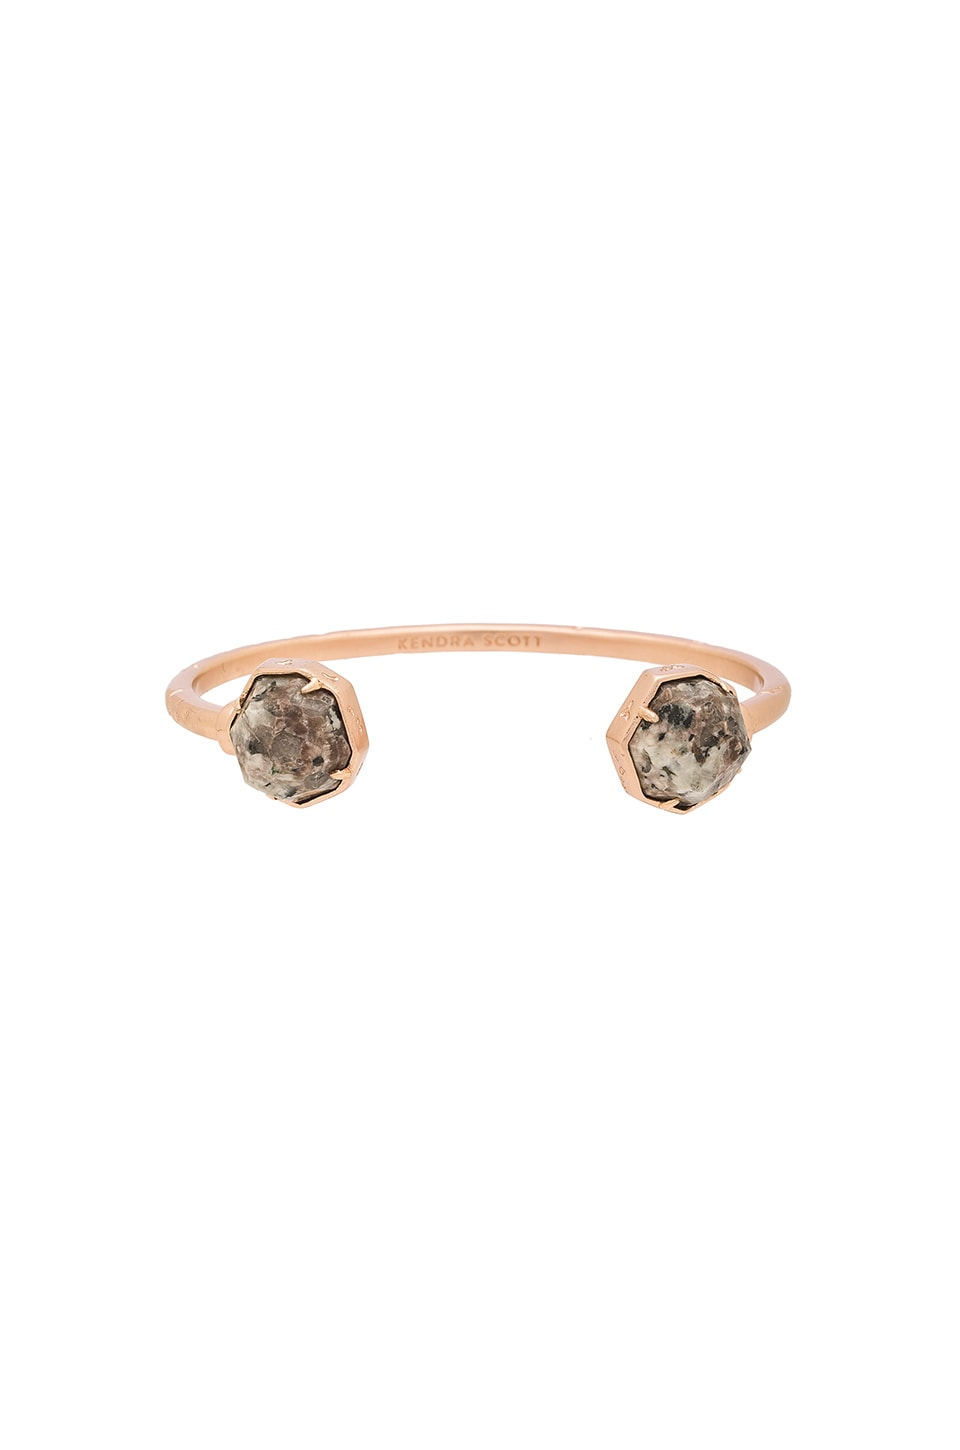 Kendra Scott Brinkley Bracelet in Rose Gold & Gray Granite